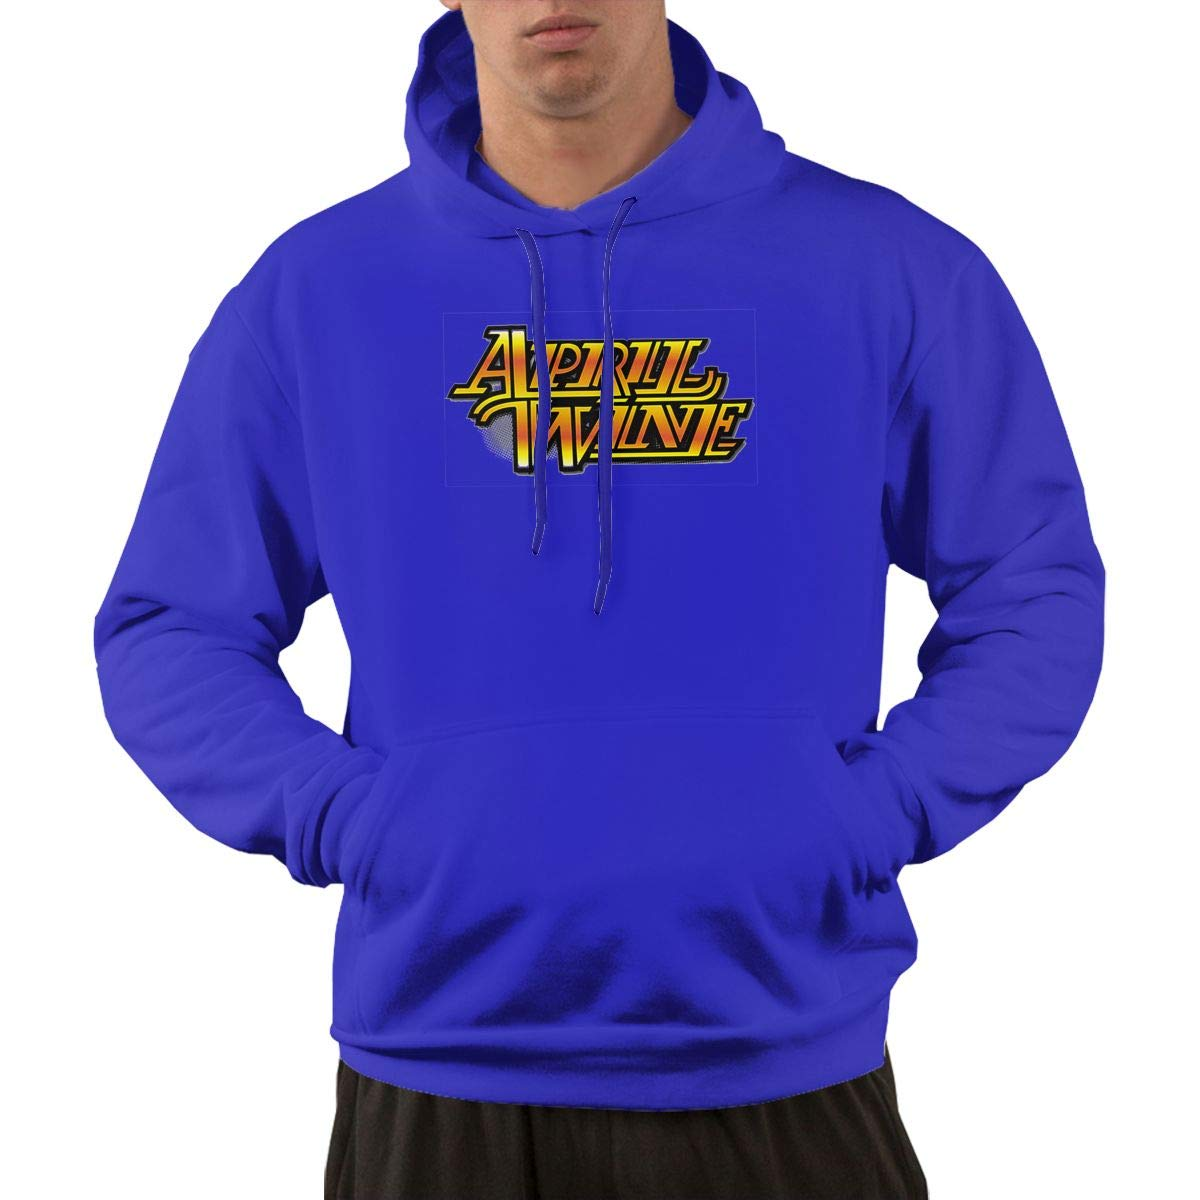 Erman S Pullover Retro Blue Print April Wine Logo Cool Hooded Shirts With Pocket 3